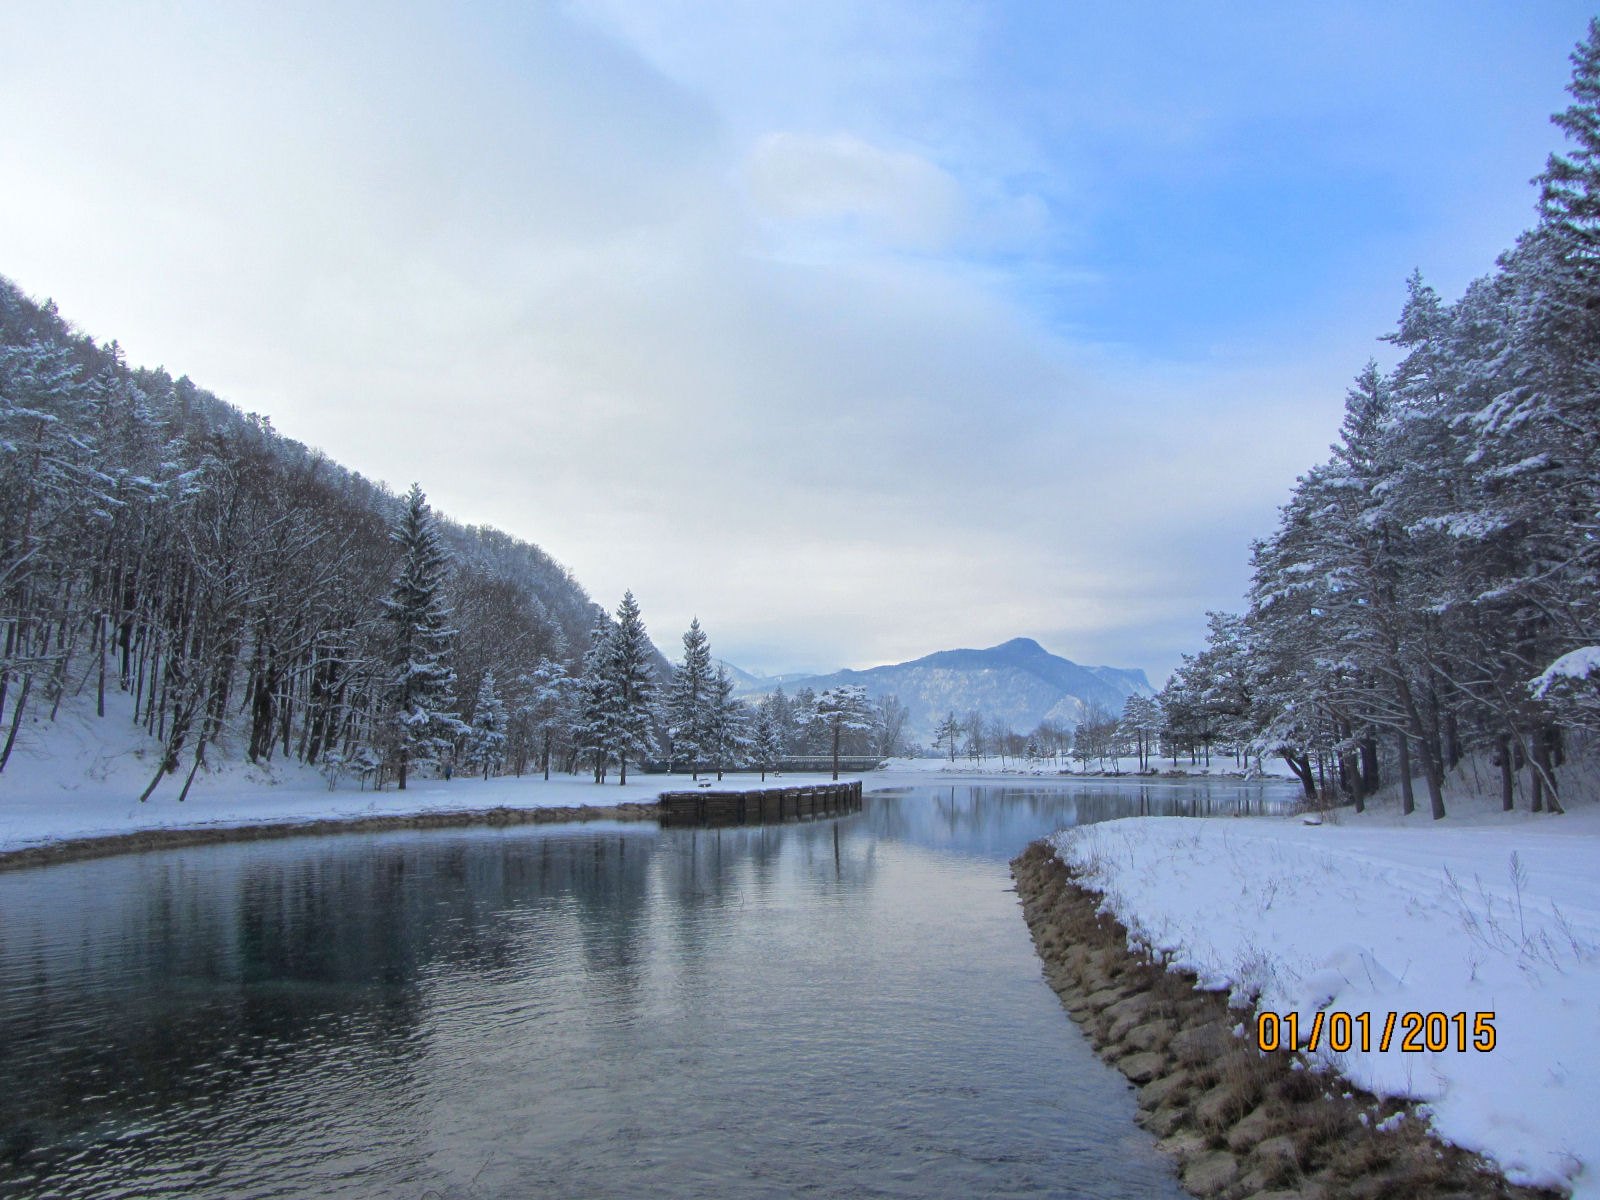 Lake Zavrsnica and the Slovenian Alps in winter